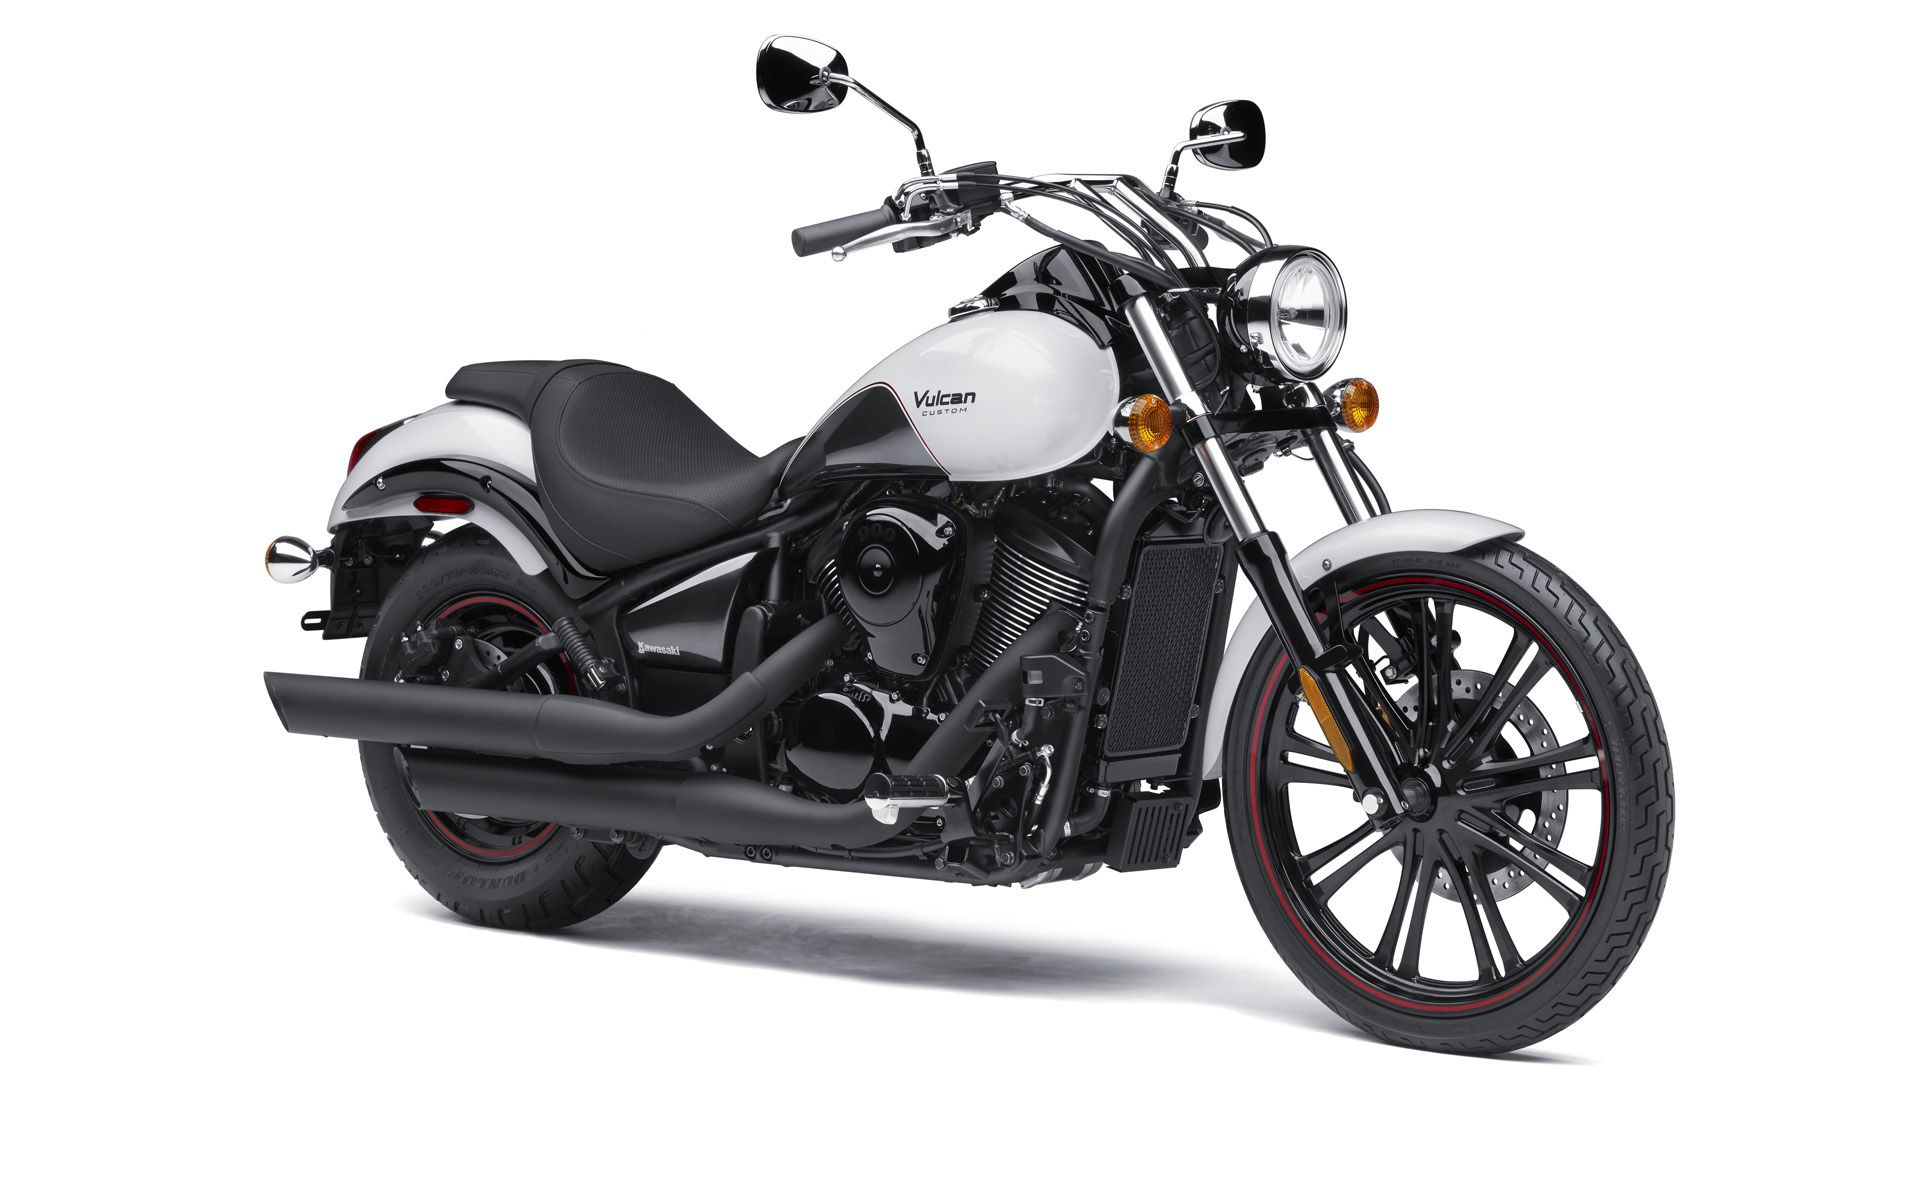 cruisers-kawasaki-vulcan-900-custom-se--pearl-crystal-white-metallic-carbon-gray